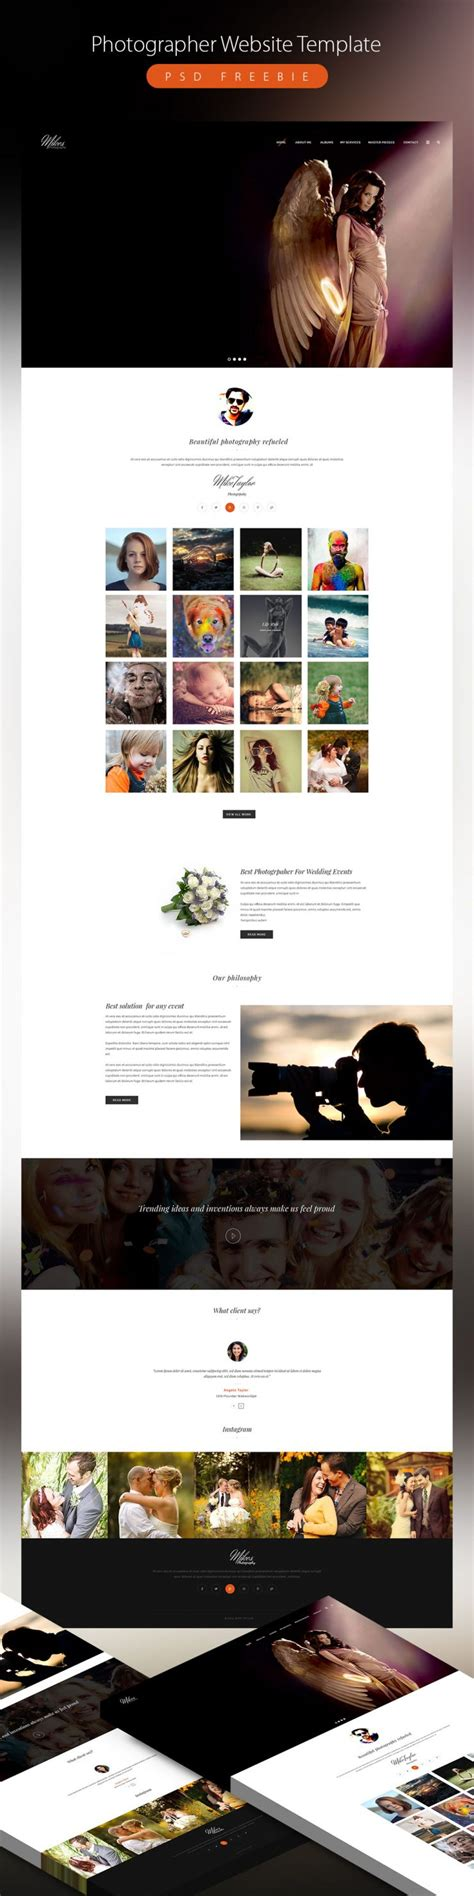 Clean Photographer Website Template Psd Freebie Download Download Psd Best Website Templates For Photographers